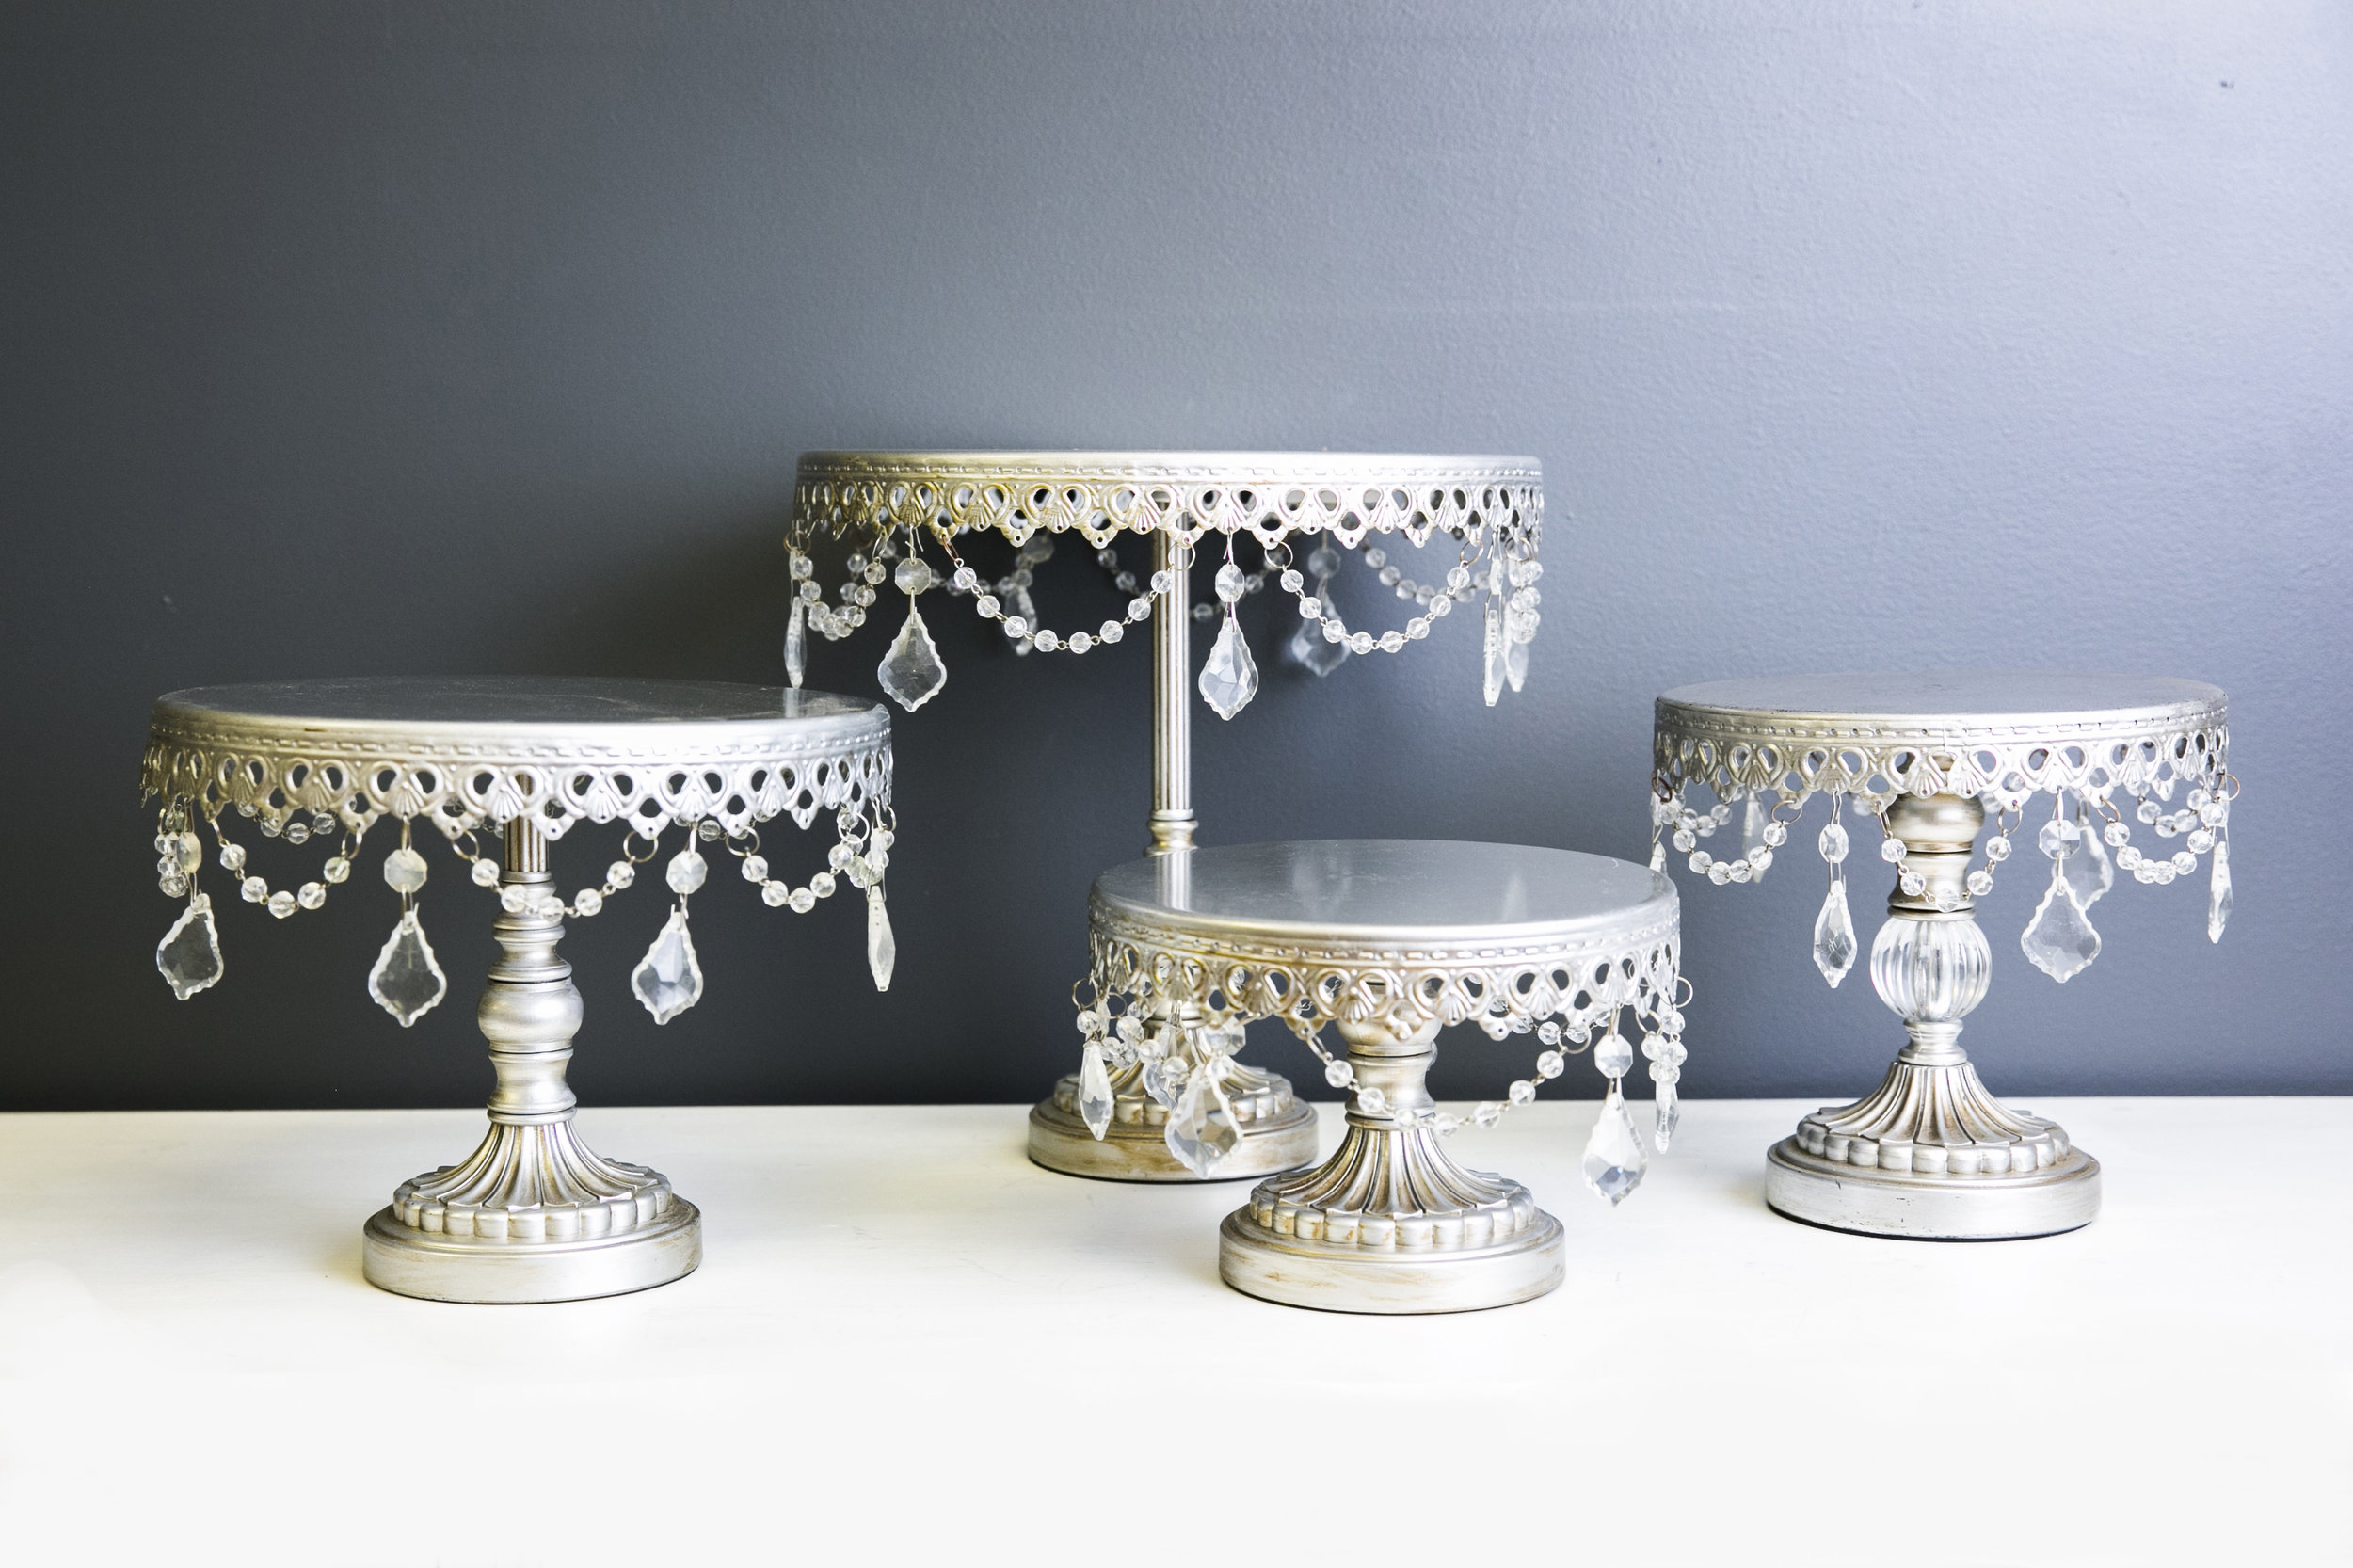 Cake Stand - Sophia Silver Collection